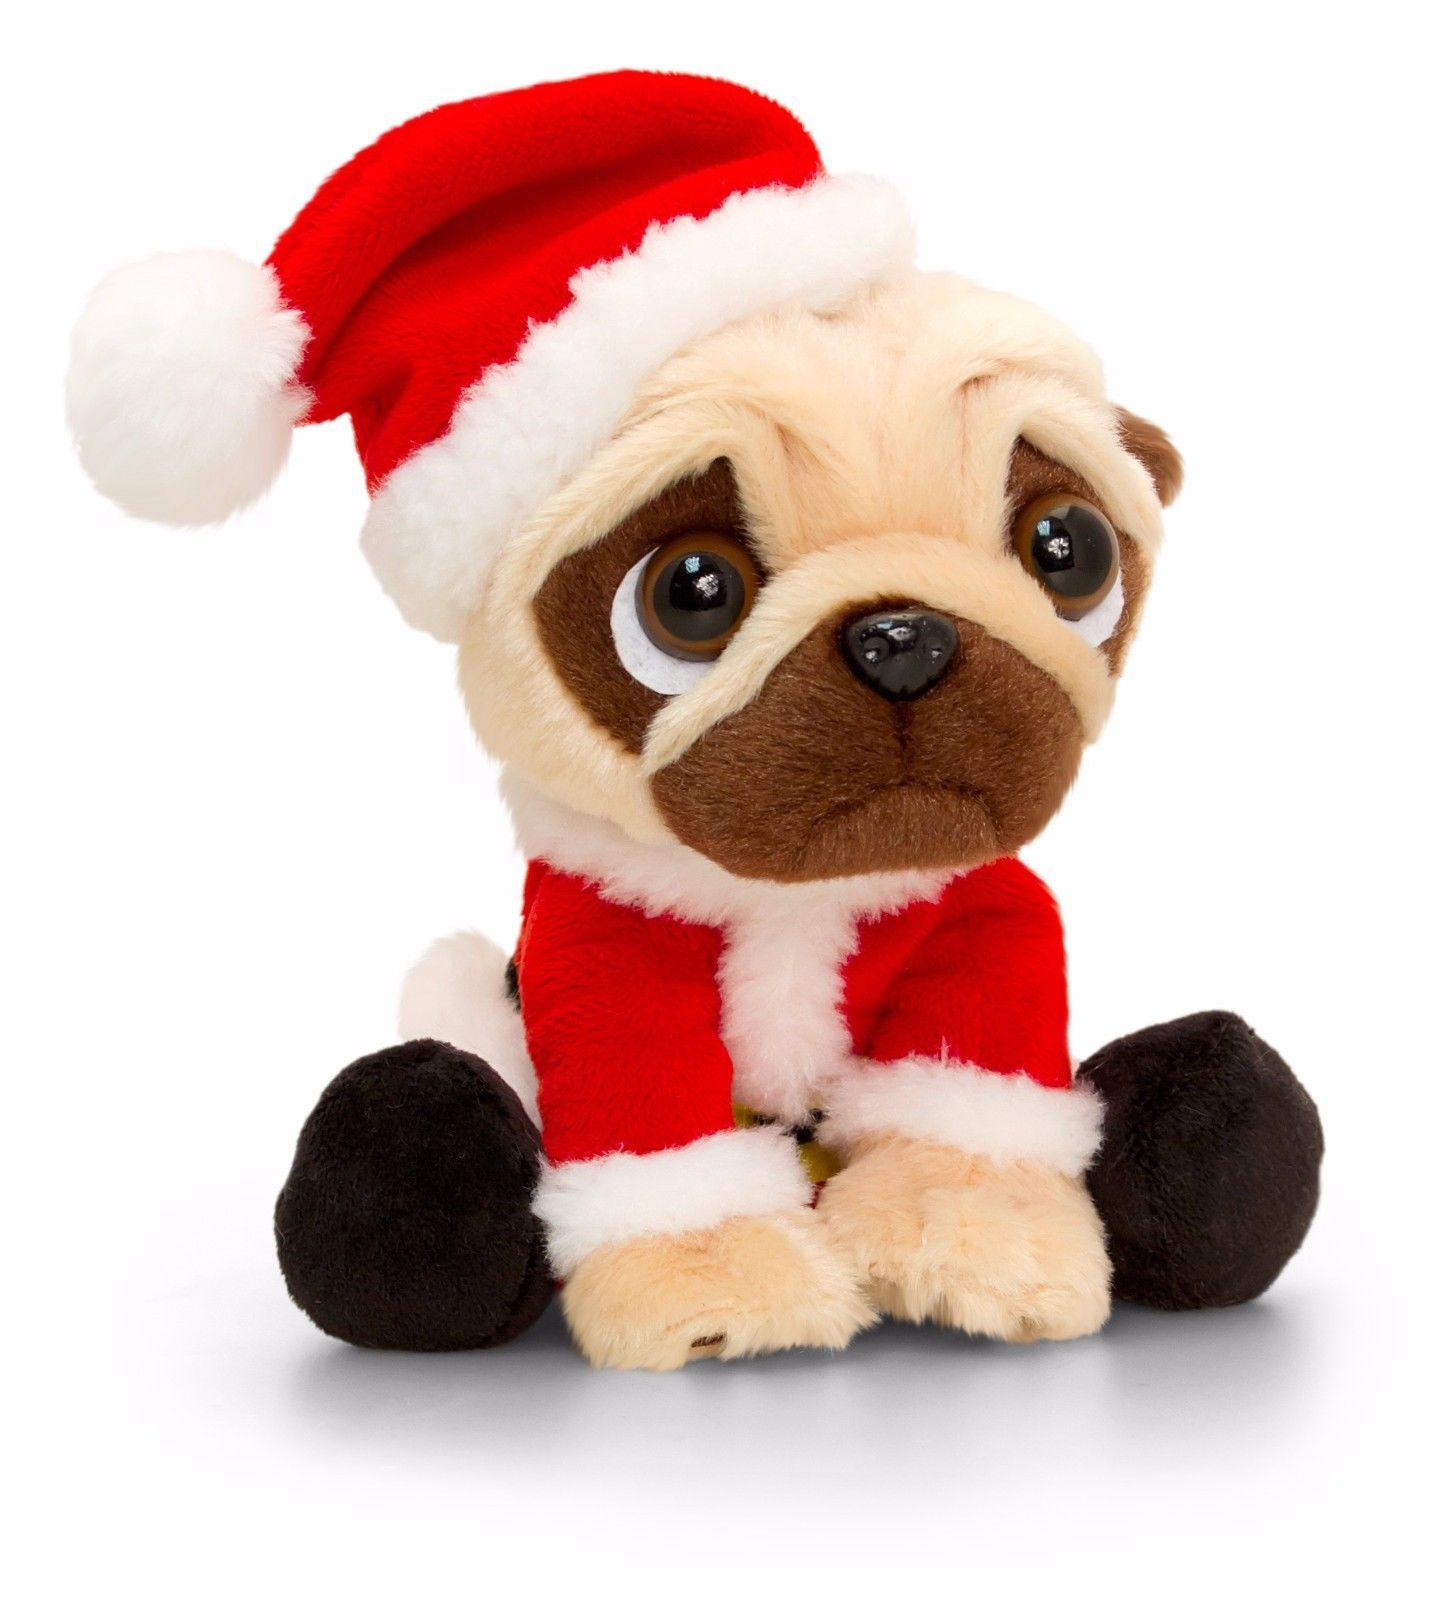 Pug Santa Plush Toy Available At Www Ilovepugs Co Uk Post